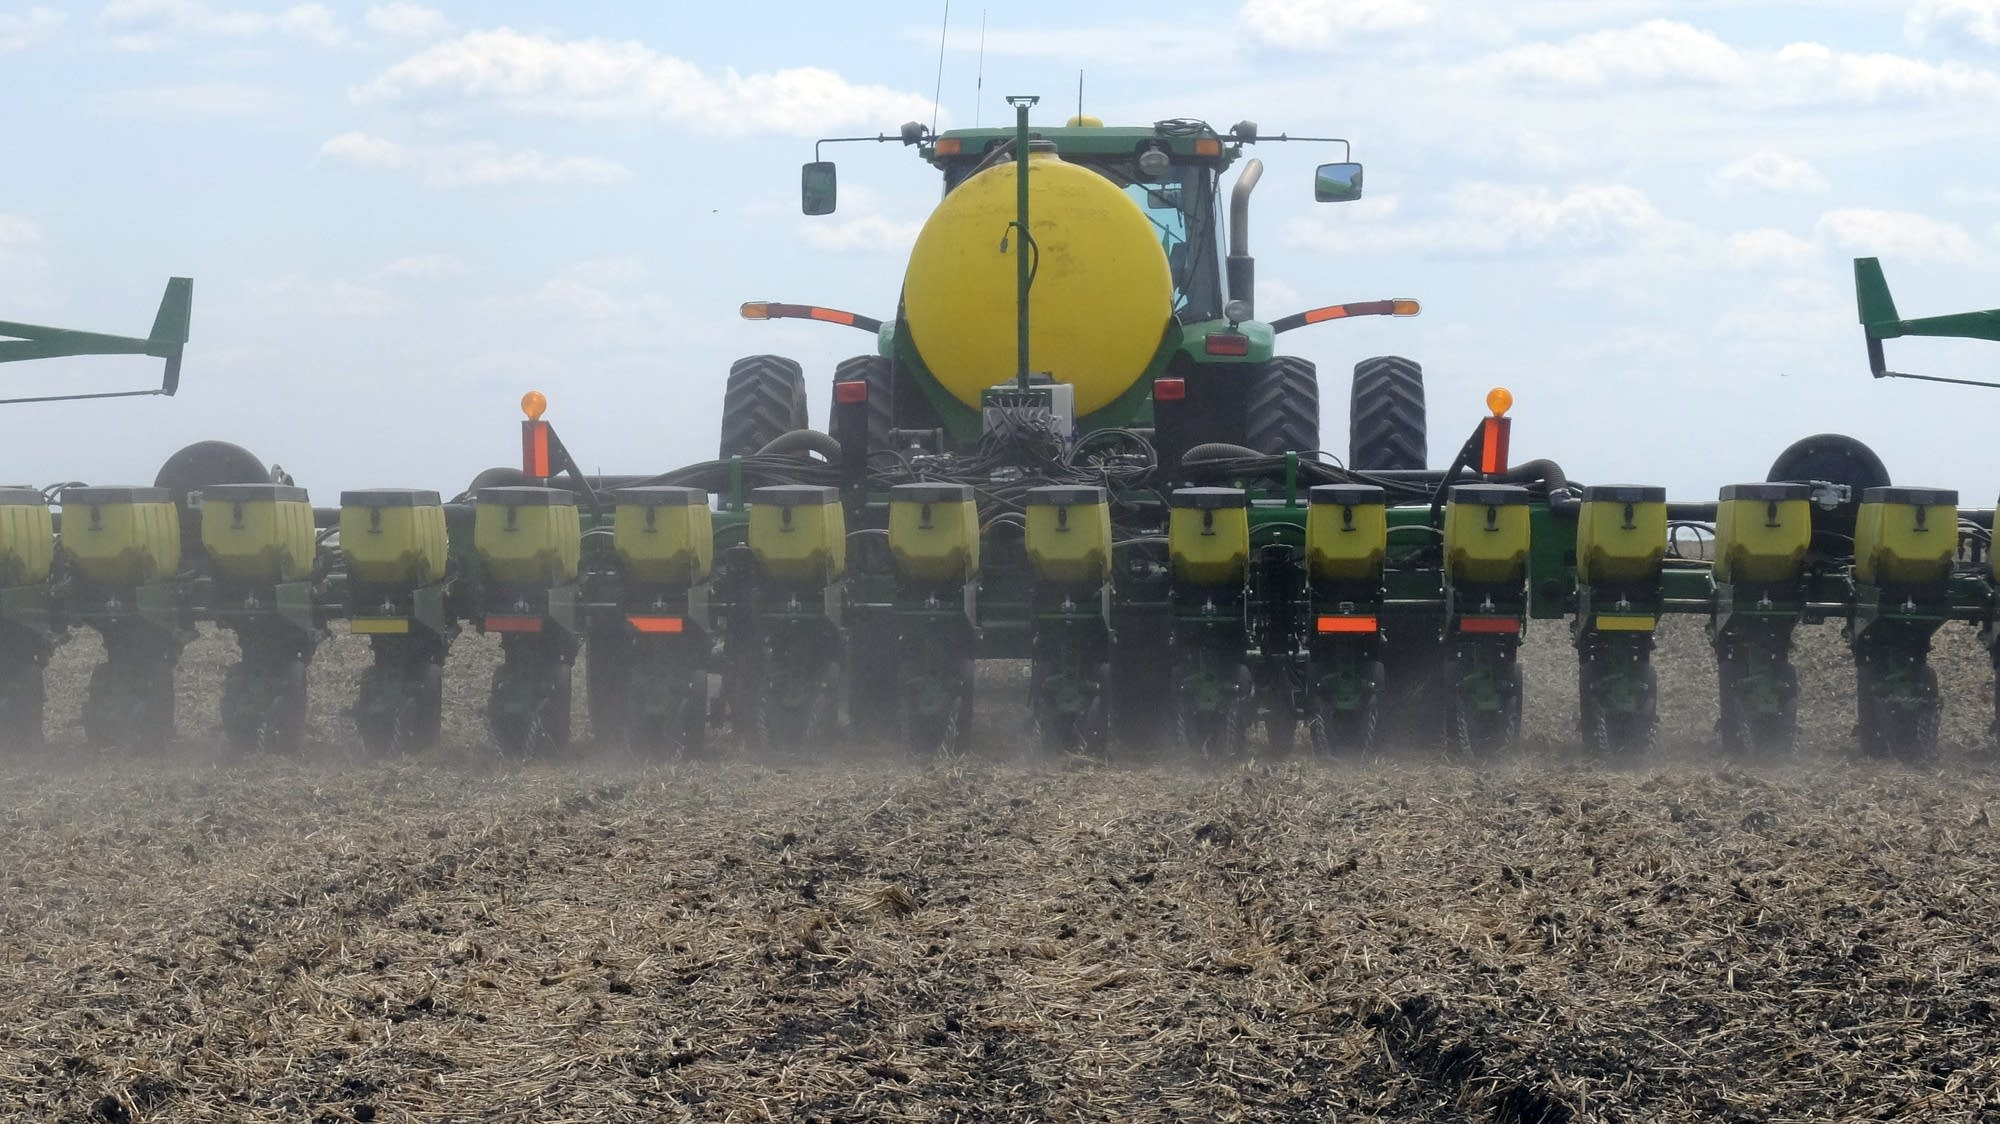 A planter stirs up dust as it buries rows of canola seeds.